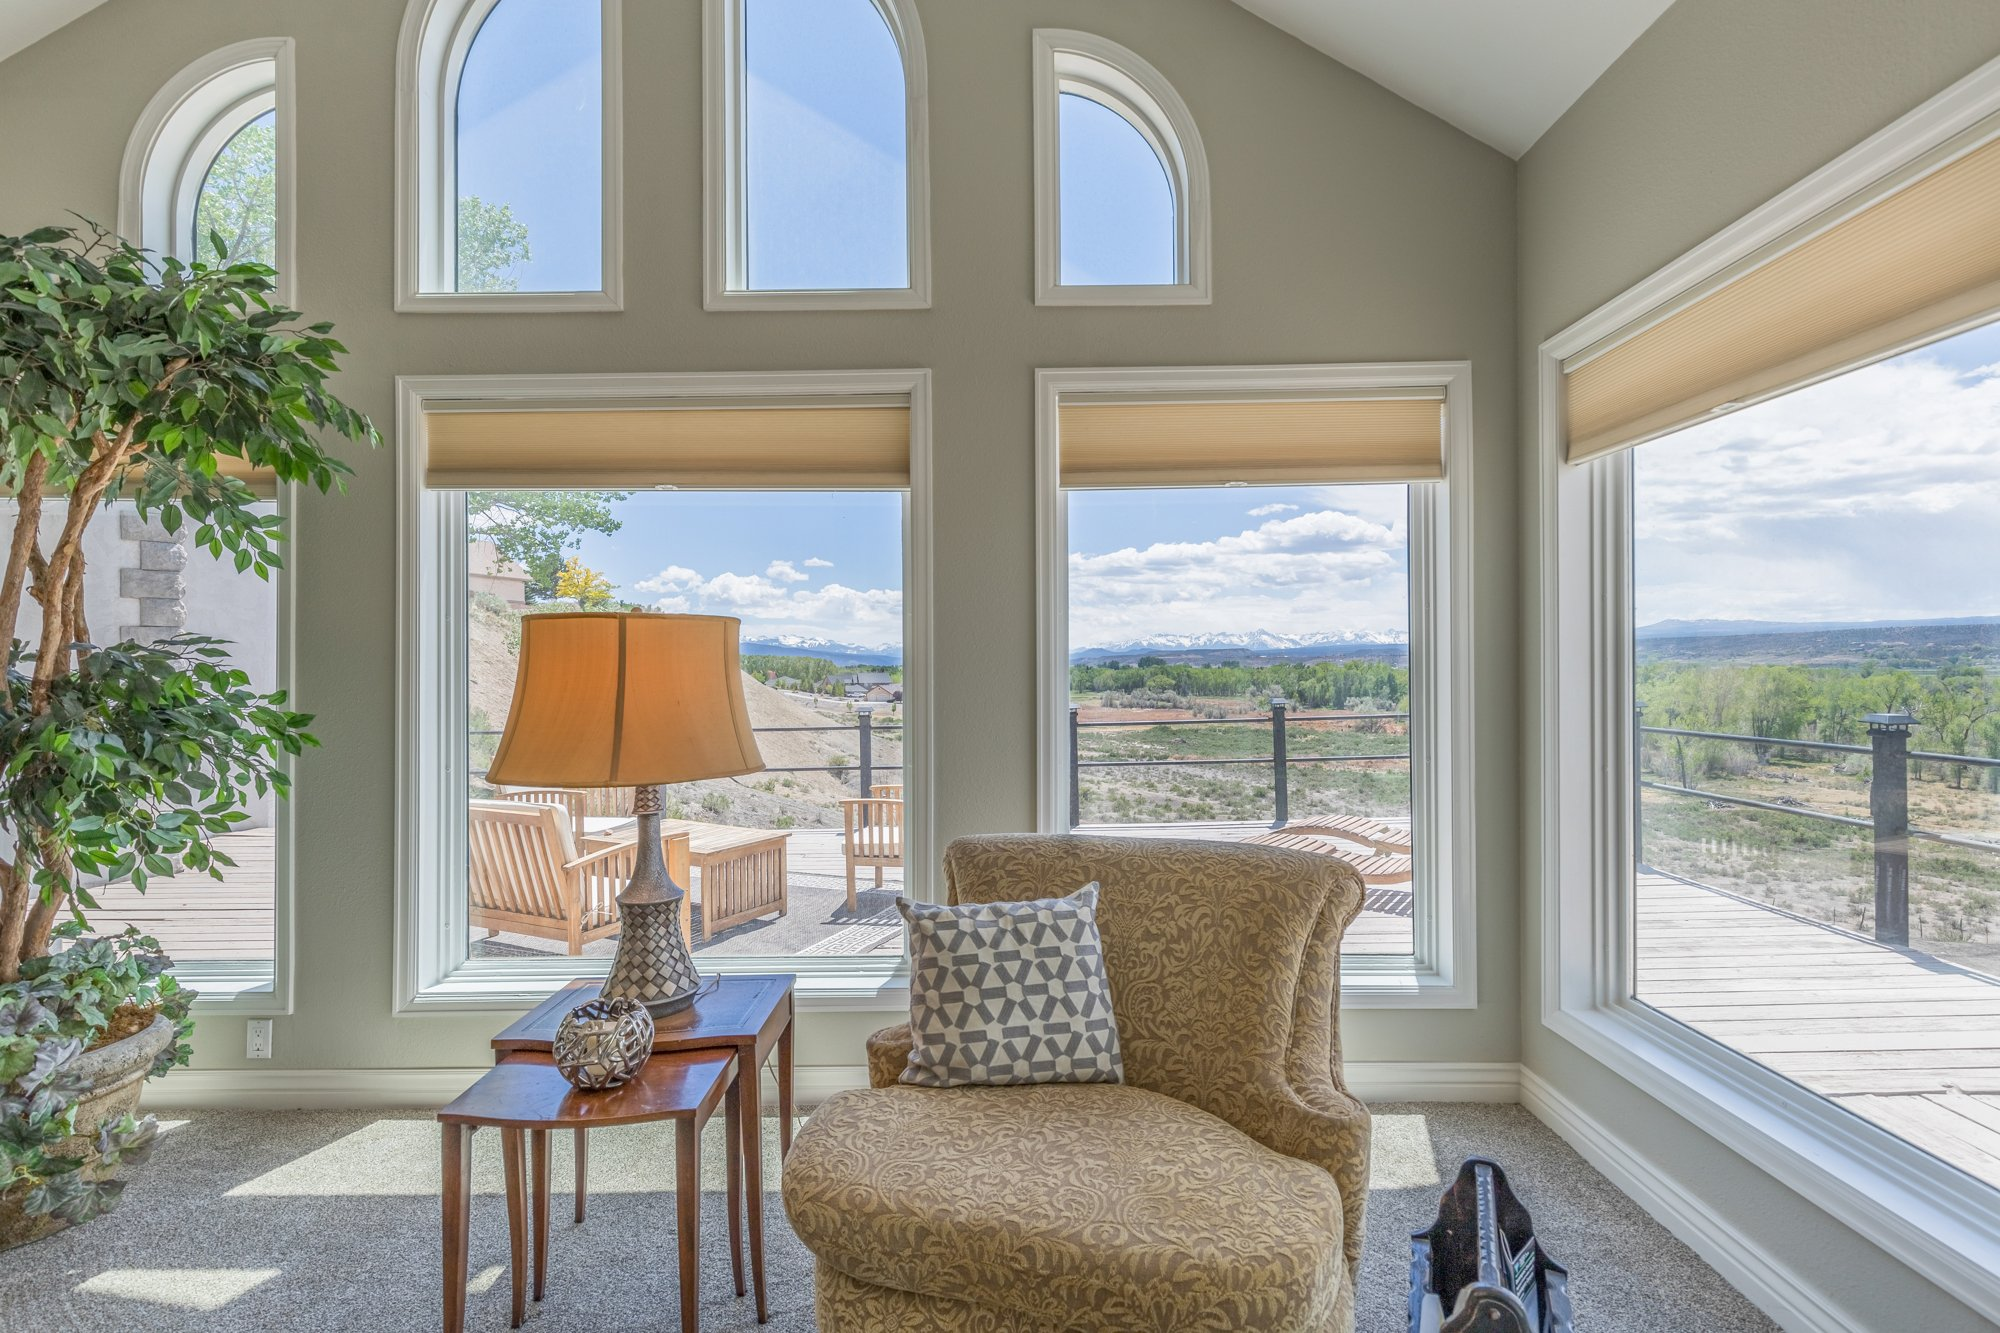 Living Room Mountain Views - 16955 Wildwood Dr. Montrose, CO 81403 - Atha Team Luxury Real Estate